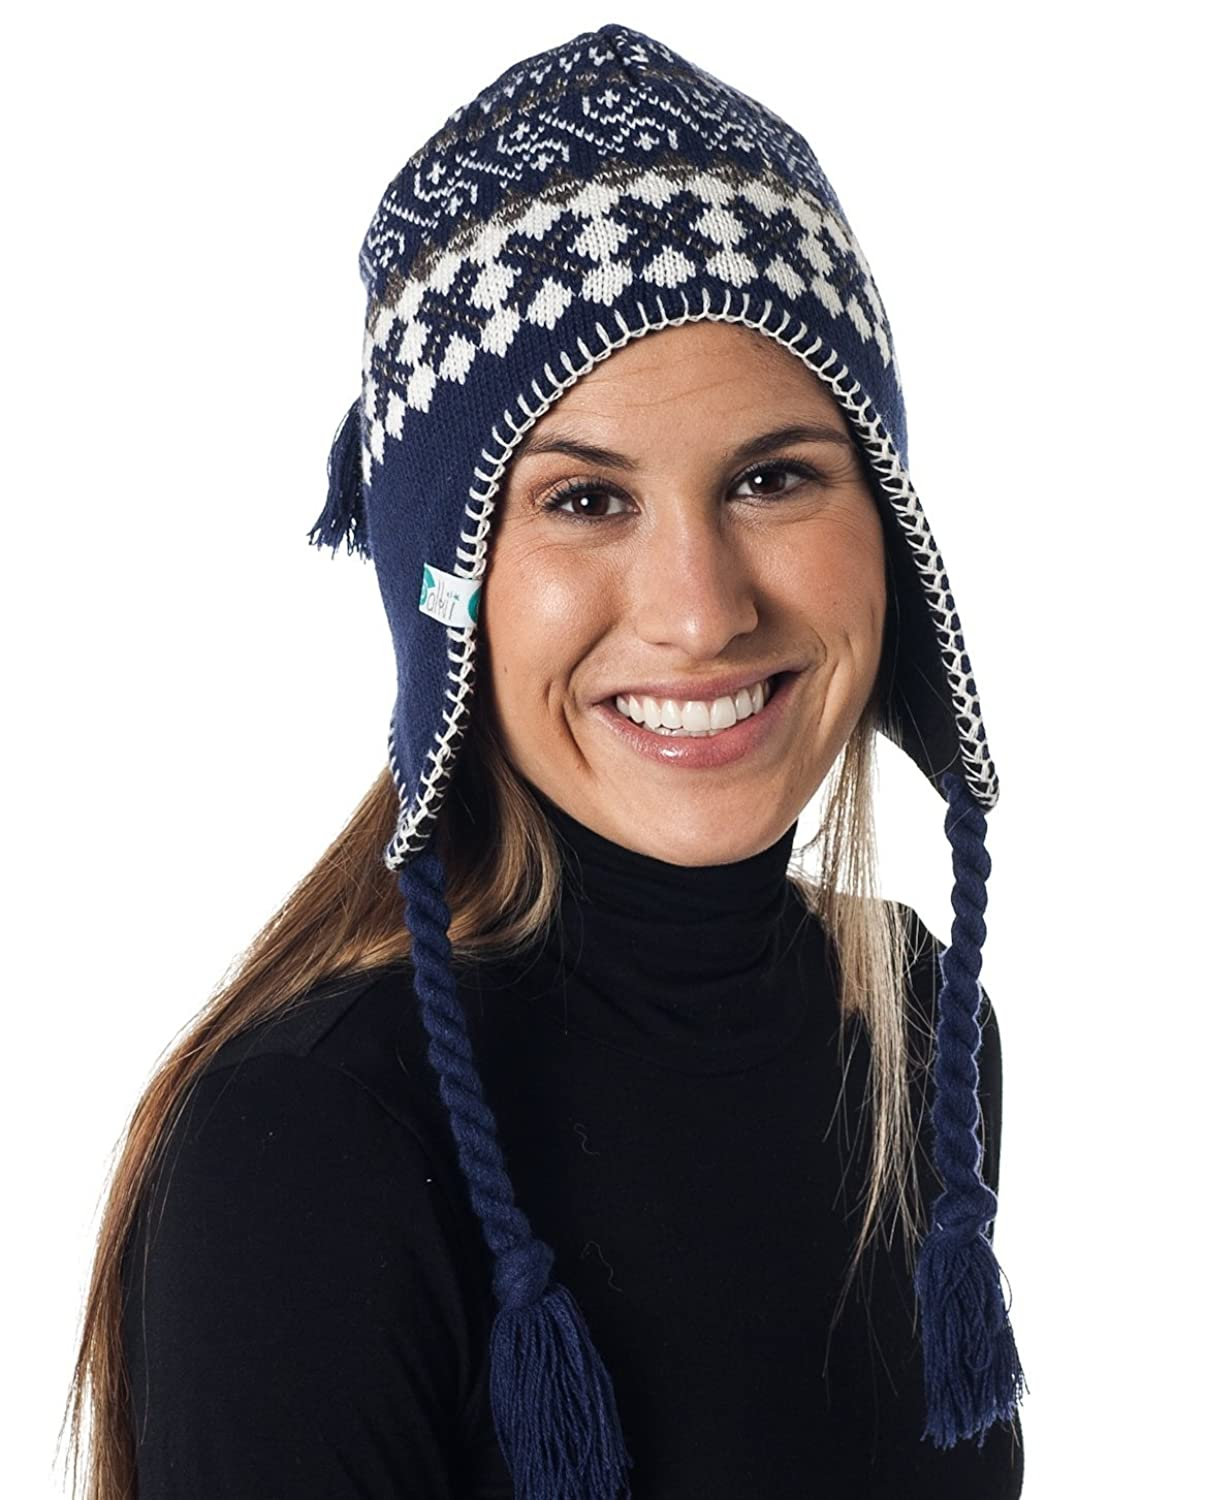 Alki i Braided Aviator womens warm beanie snowboarding winter snow hats  H607 - 5 colors 323767c86c9a